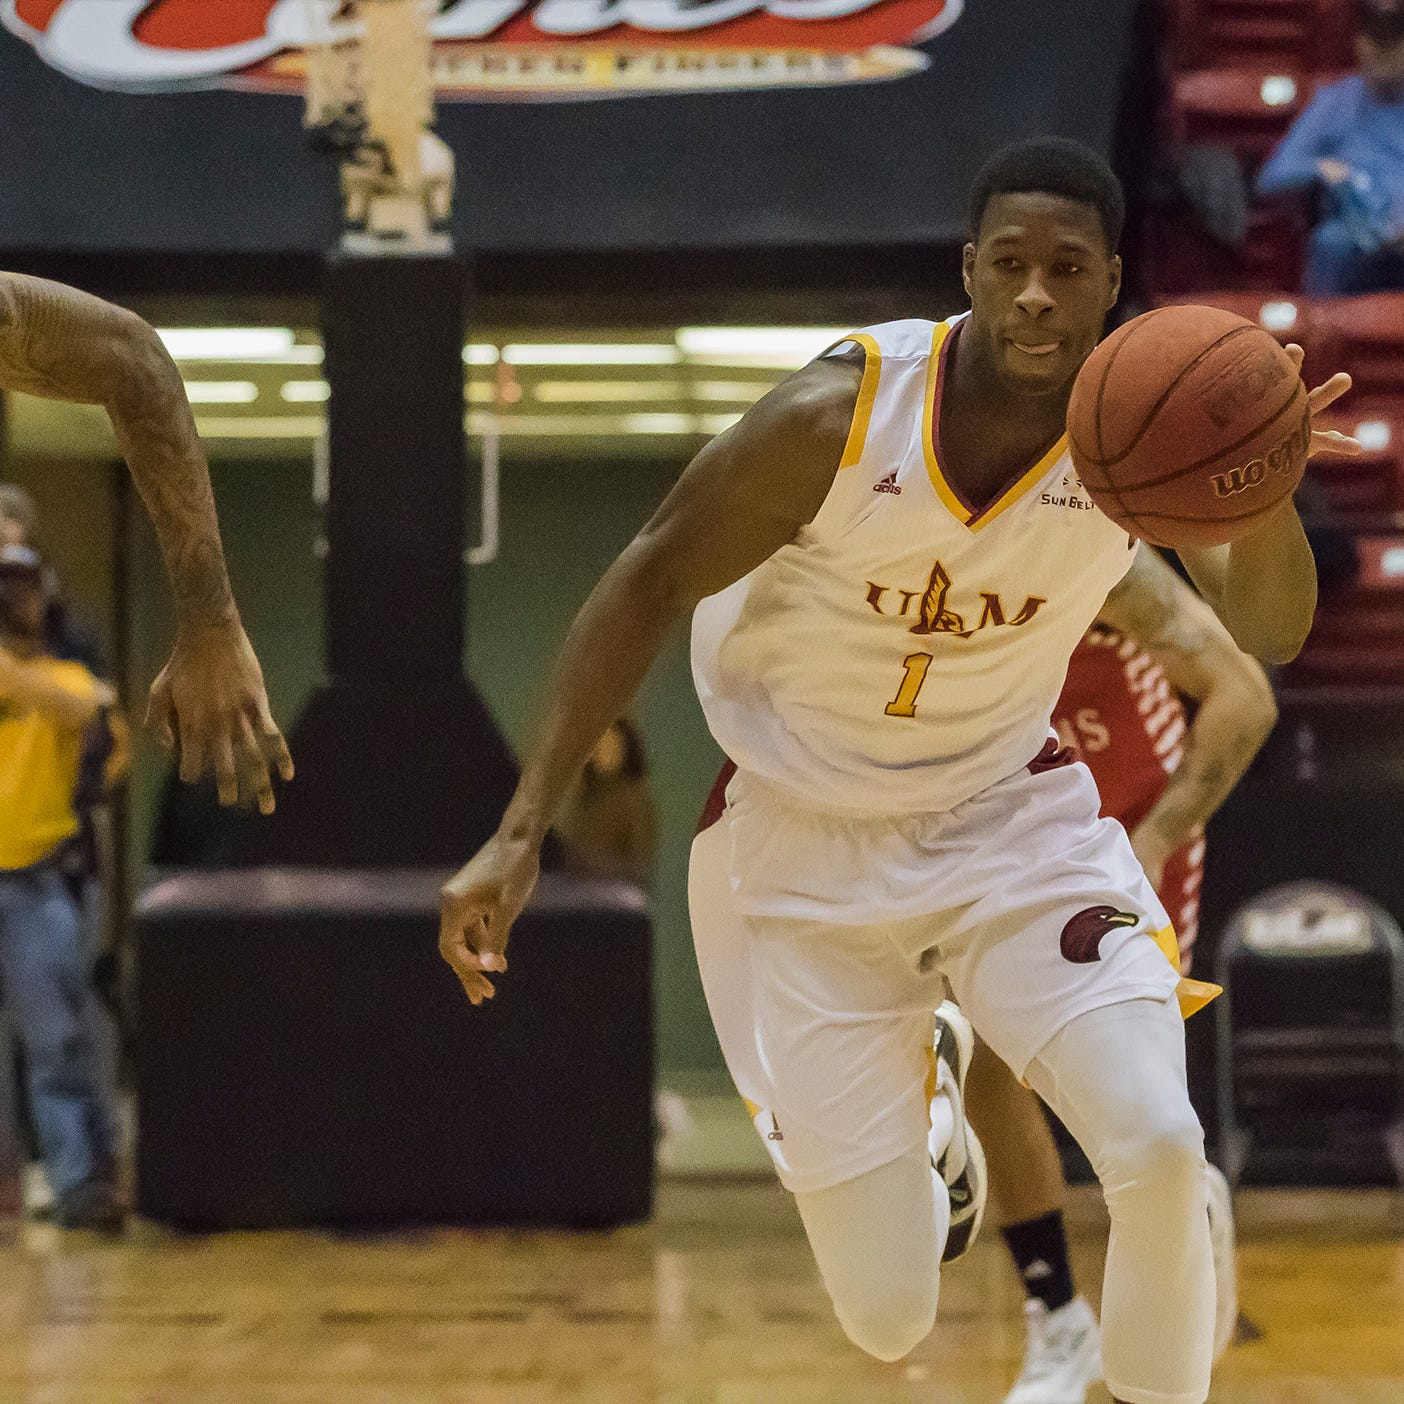 ULM survives late rally, outlasts Ragin' Cajuns